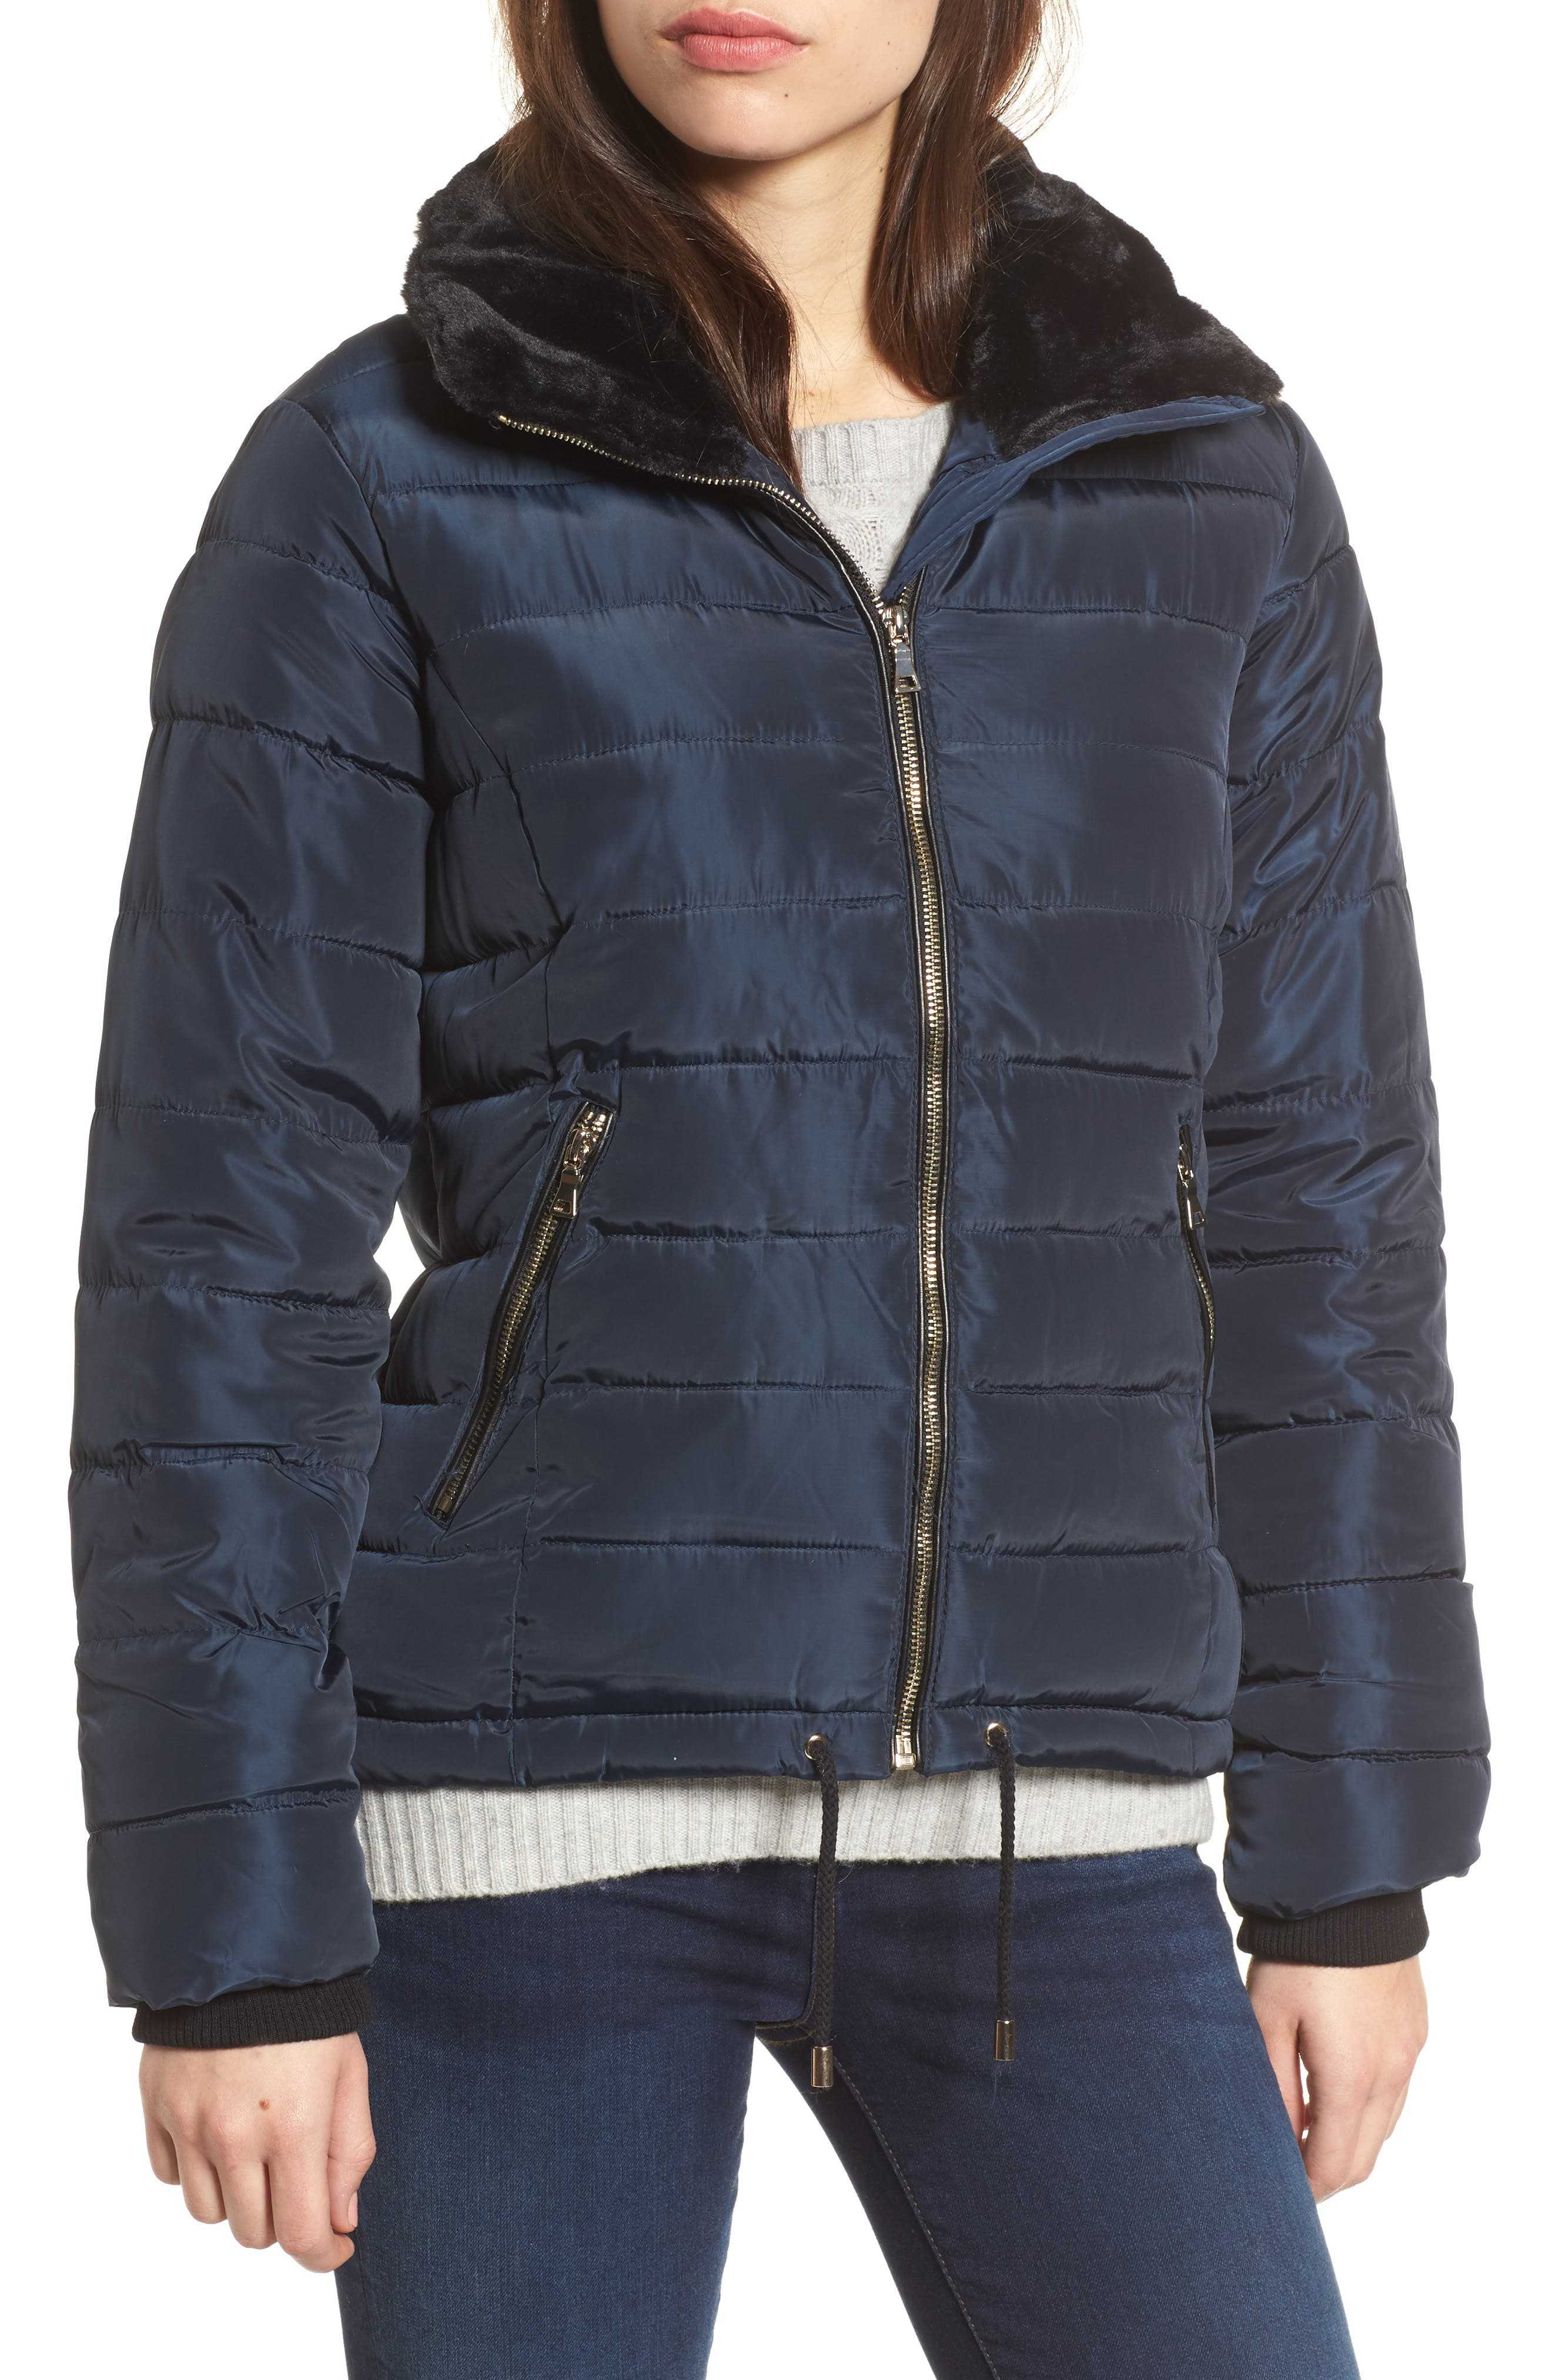 Puffer Jacket with Faux Fur Collar Lining,                             Alternate thumbnail 4, color,                             400